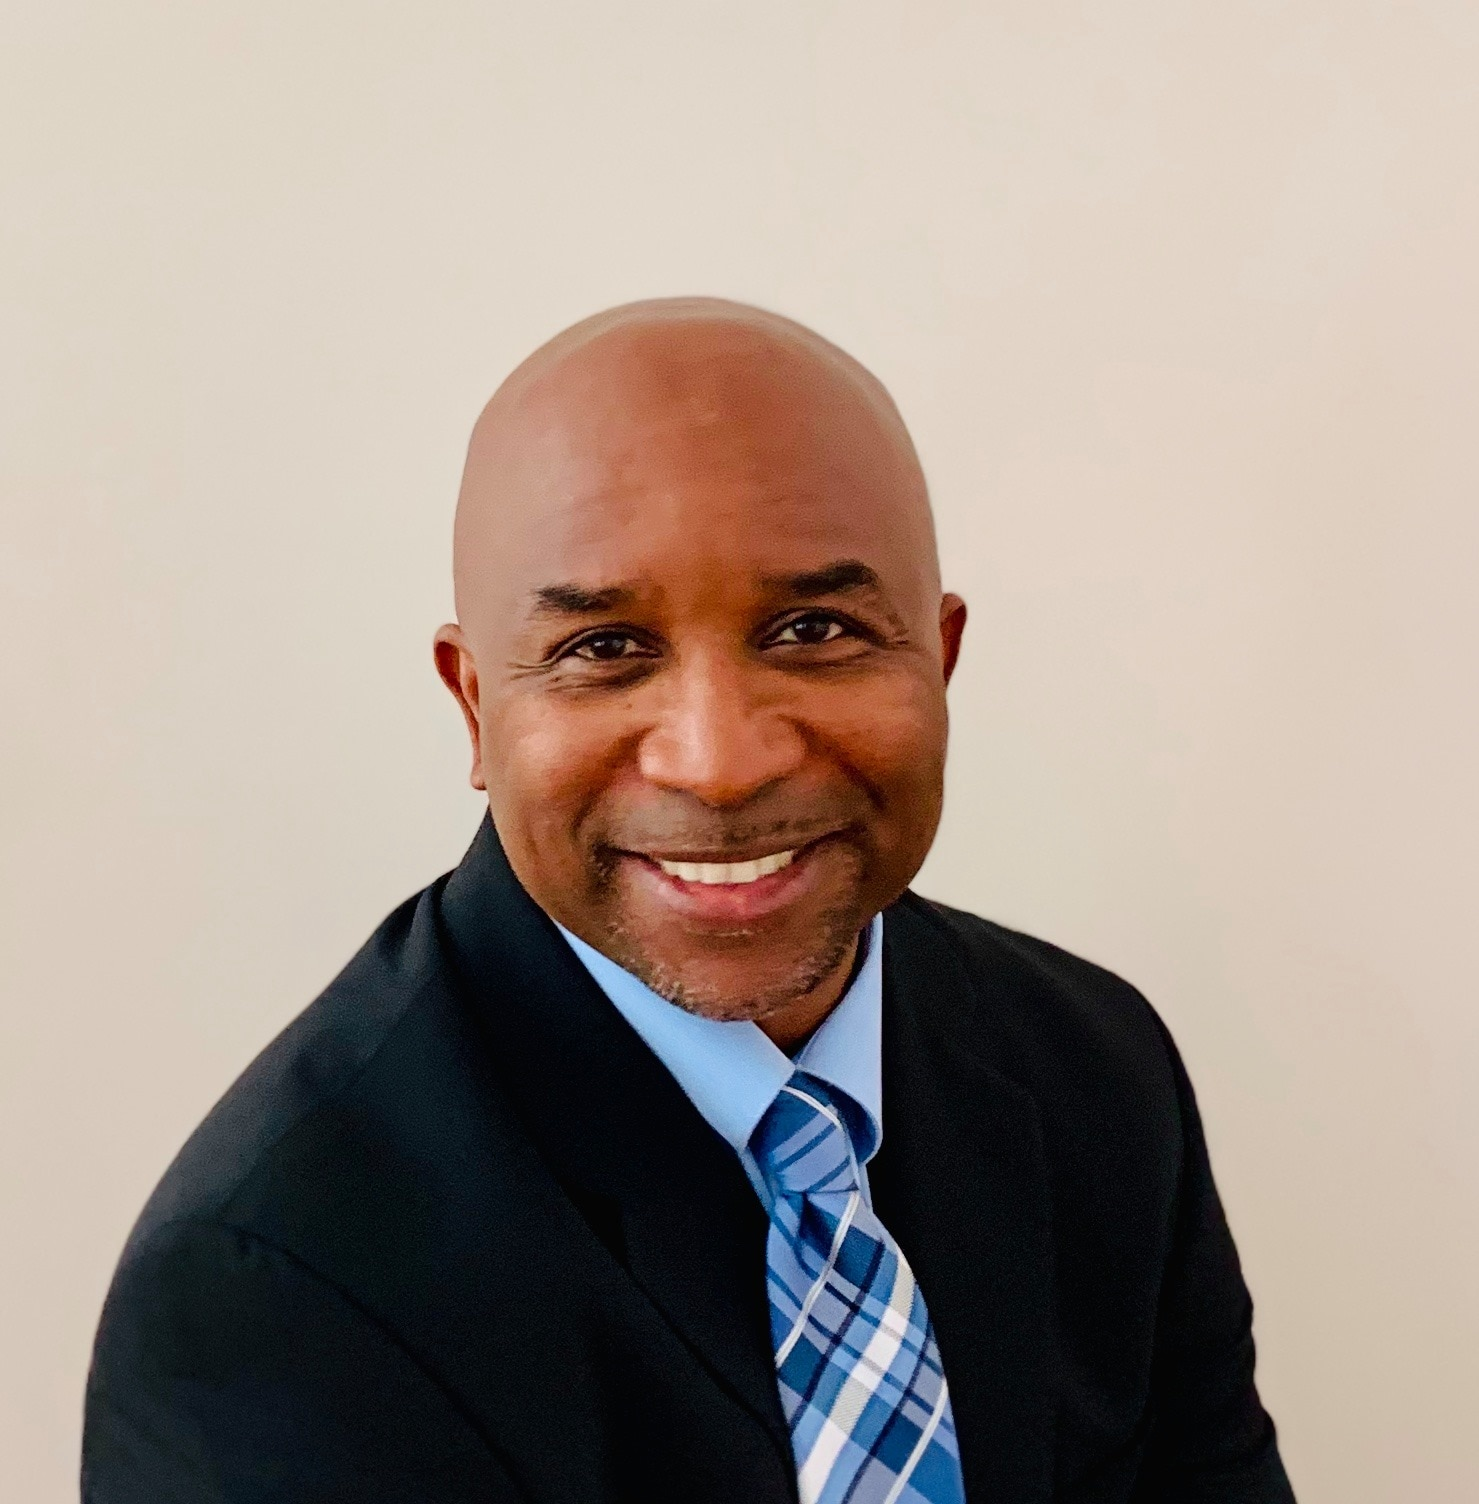 AINSWORTH ANTHONY GRANT  Your Financial Professional & Insurance Agent